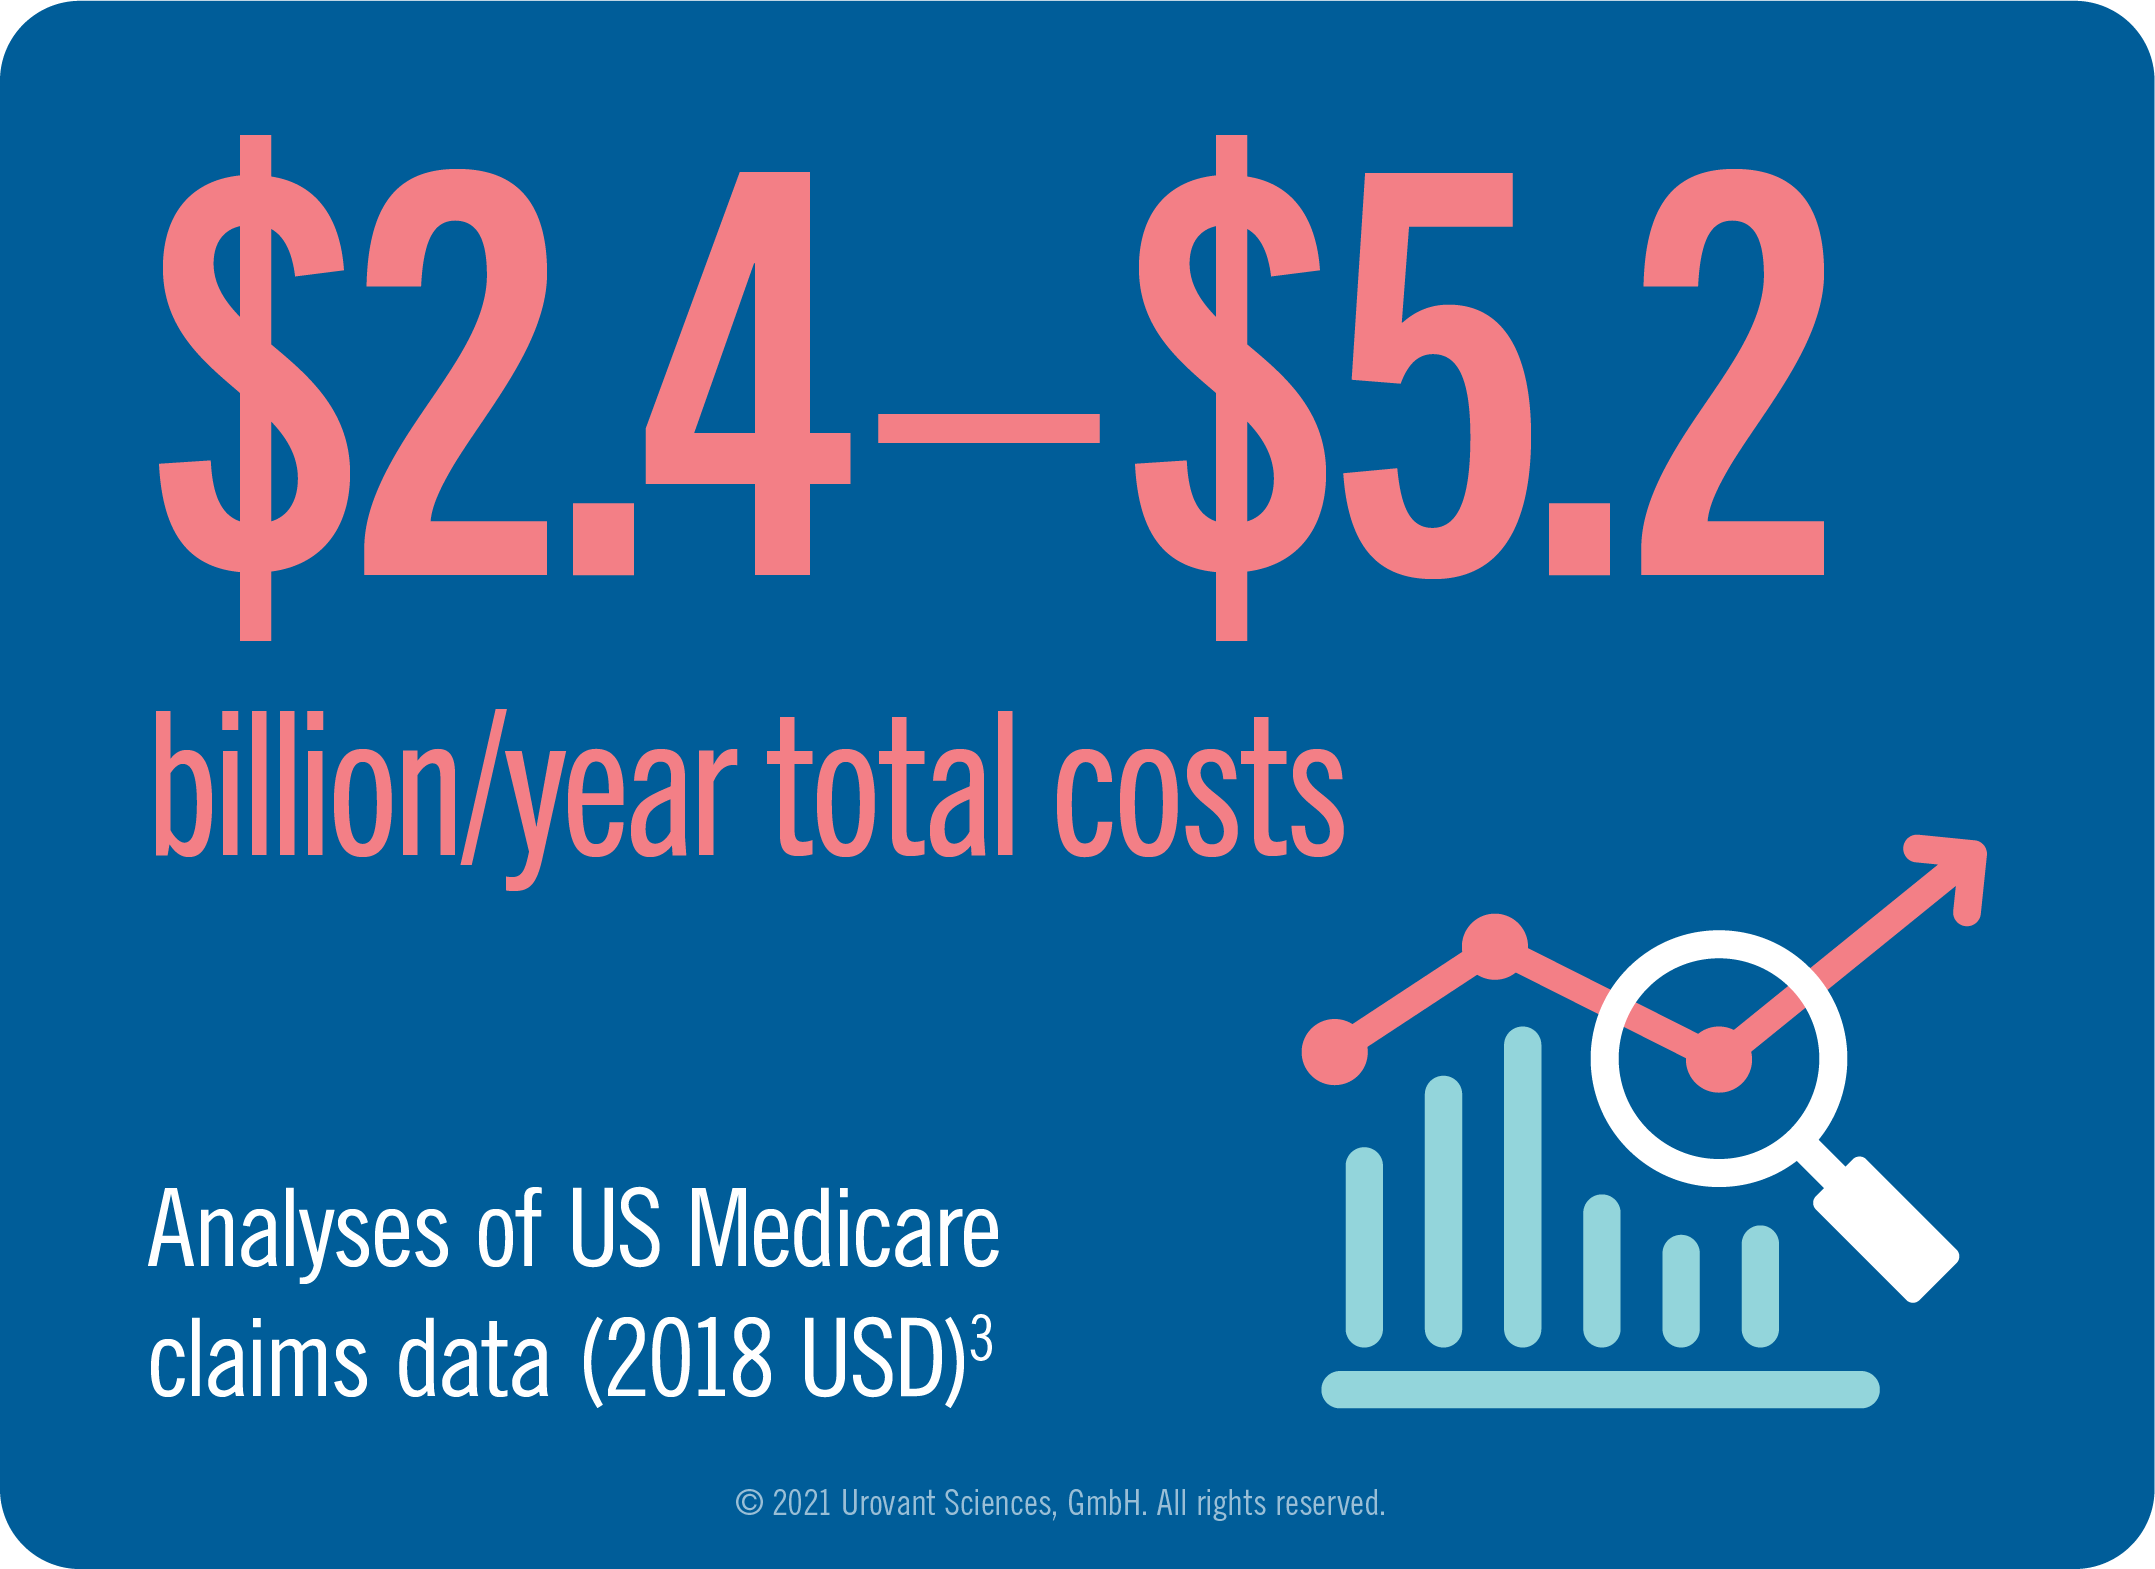 Infographic of total healthcare dollar cost per year for overactive bladder based on U.S. Medicare claims data